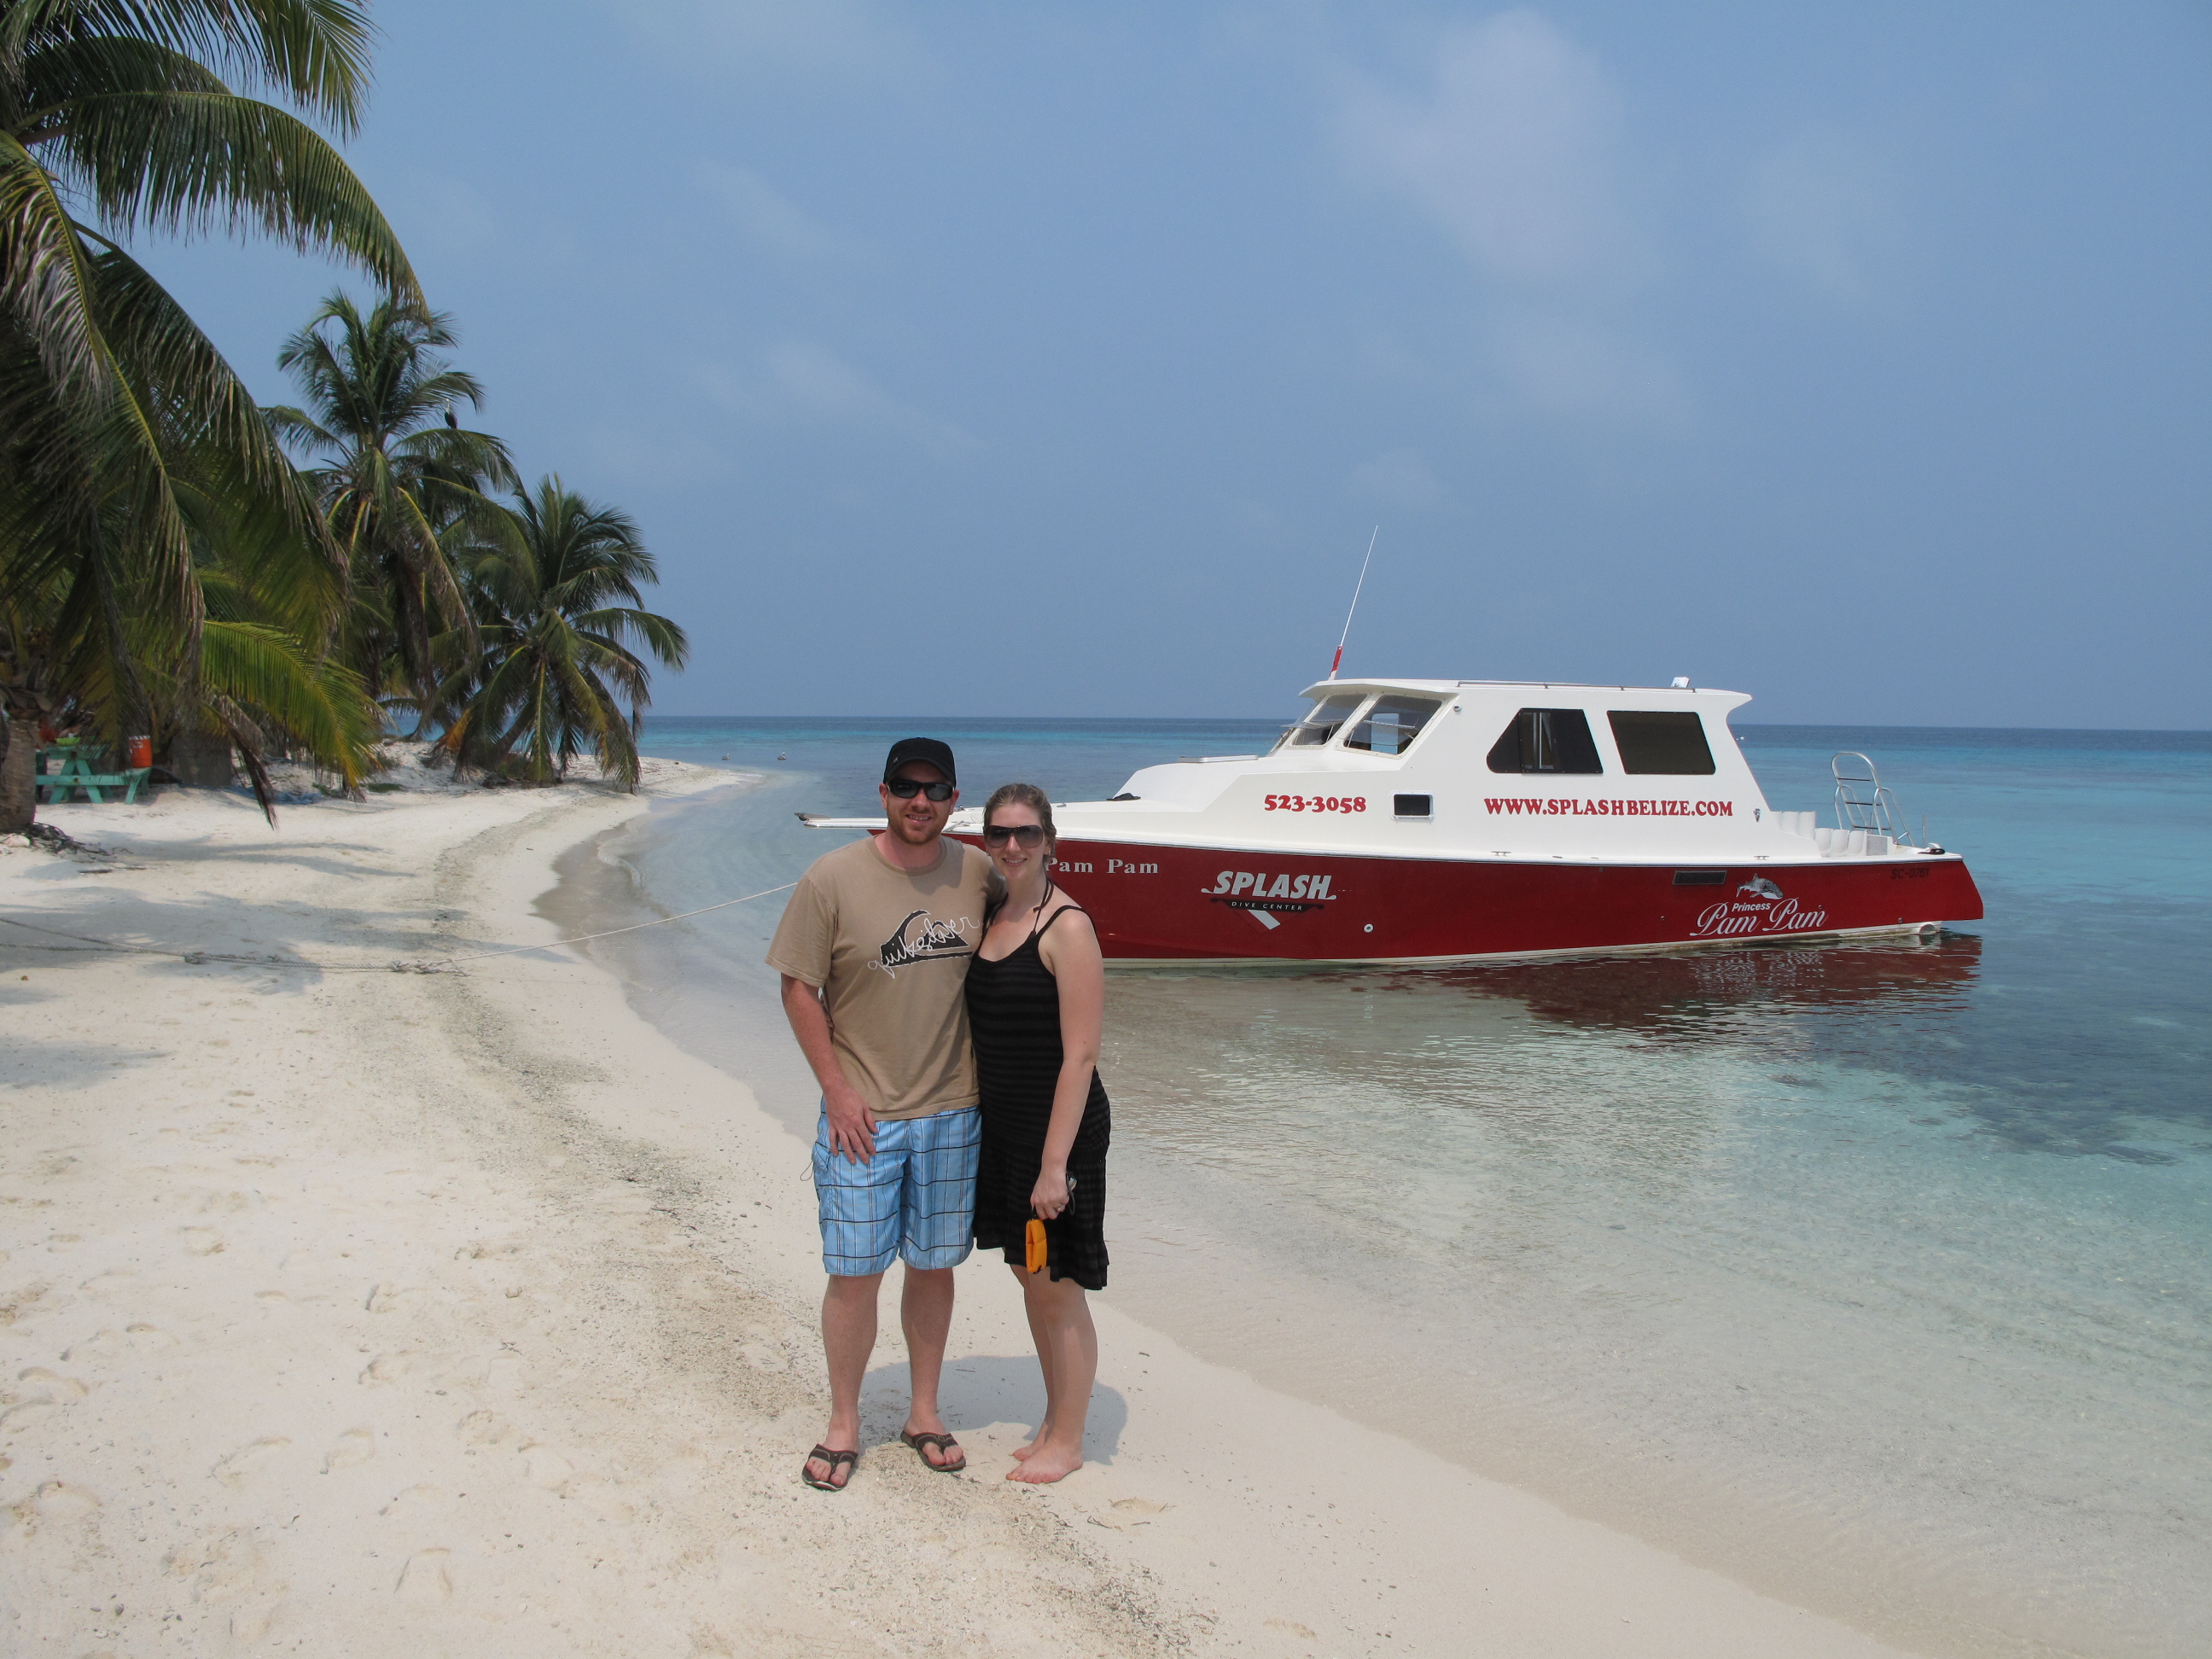 Our Private Island for the Day in the Belize Barrier Reef